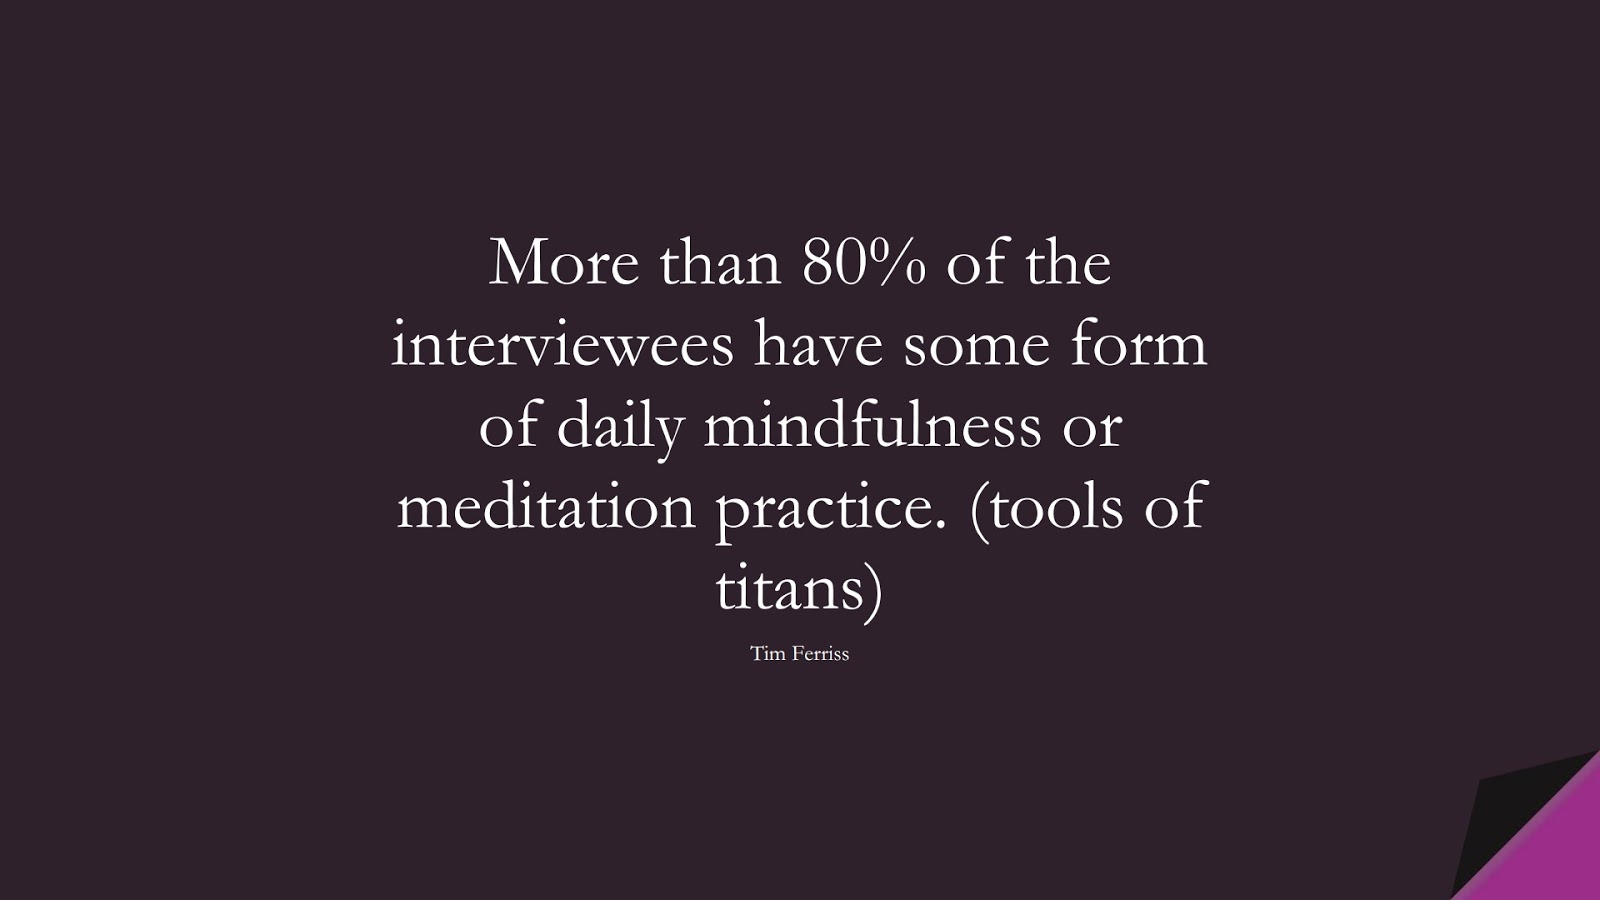 More than 80% of the interviewees have some form of daily mindfulness or meditation practice. (tools of titans) (Tim Ferriss);  #TimFerrissQuotes